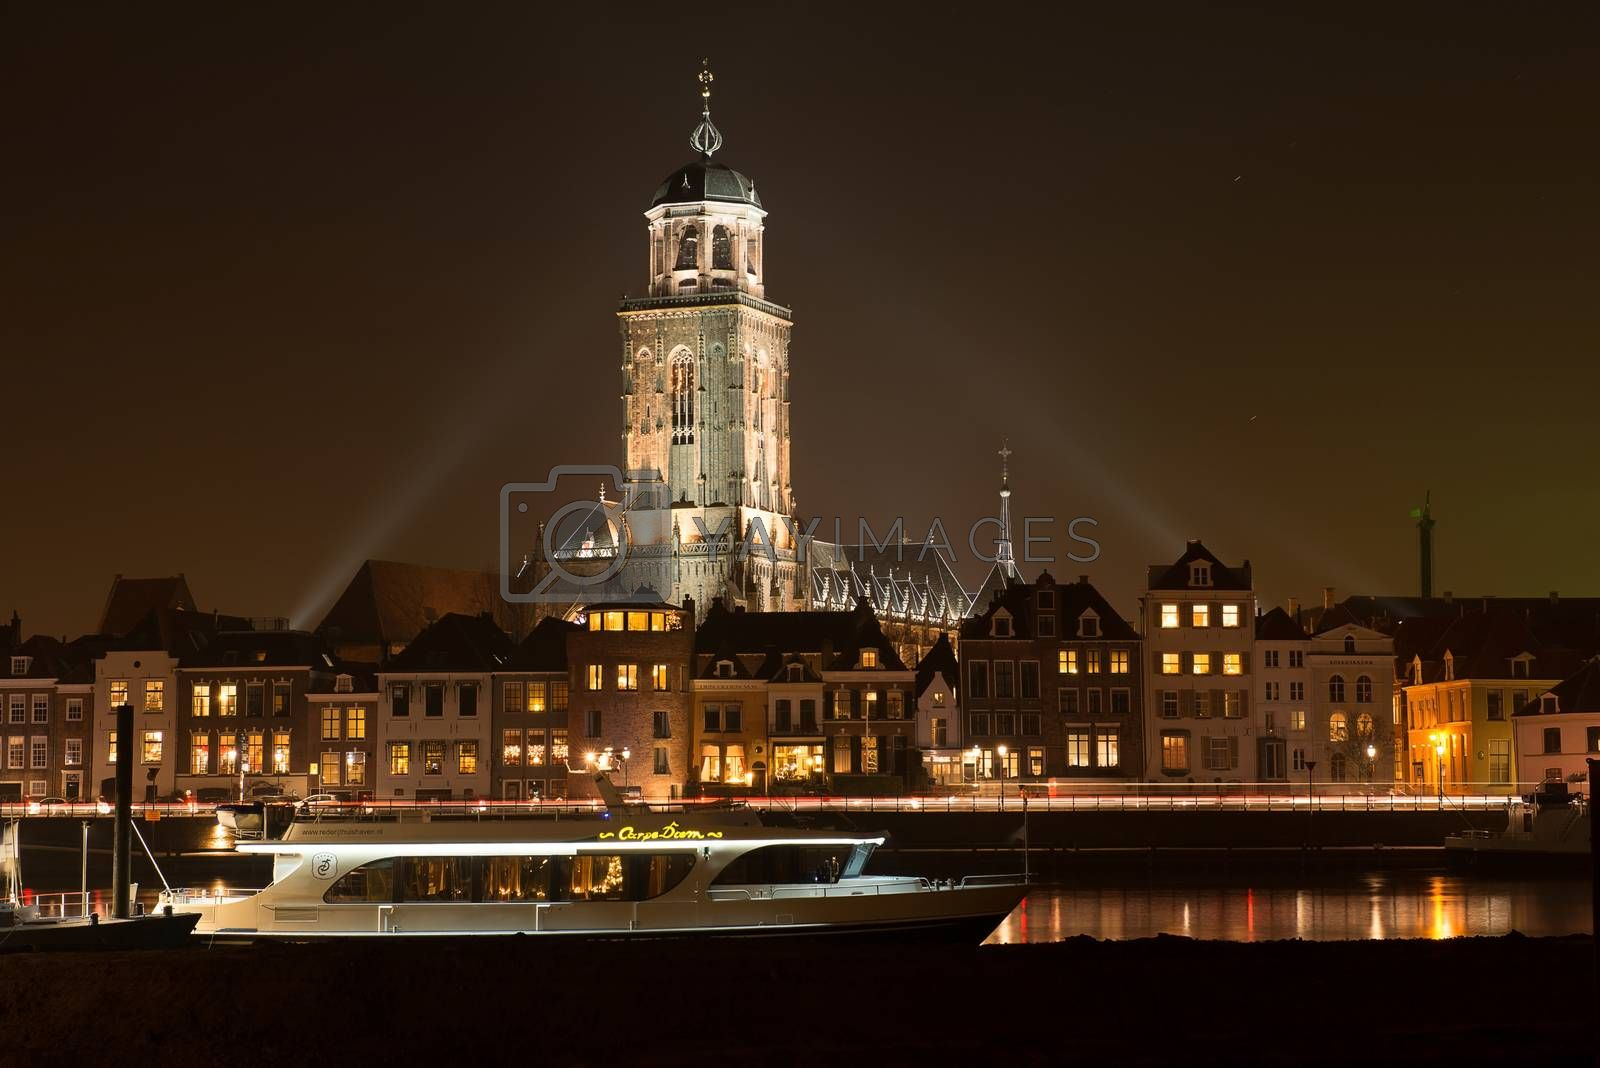 Illuminated skyline of the city of Deventer in the center of the Netherlands because of a special Char-les Dickens weekend